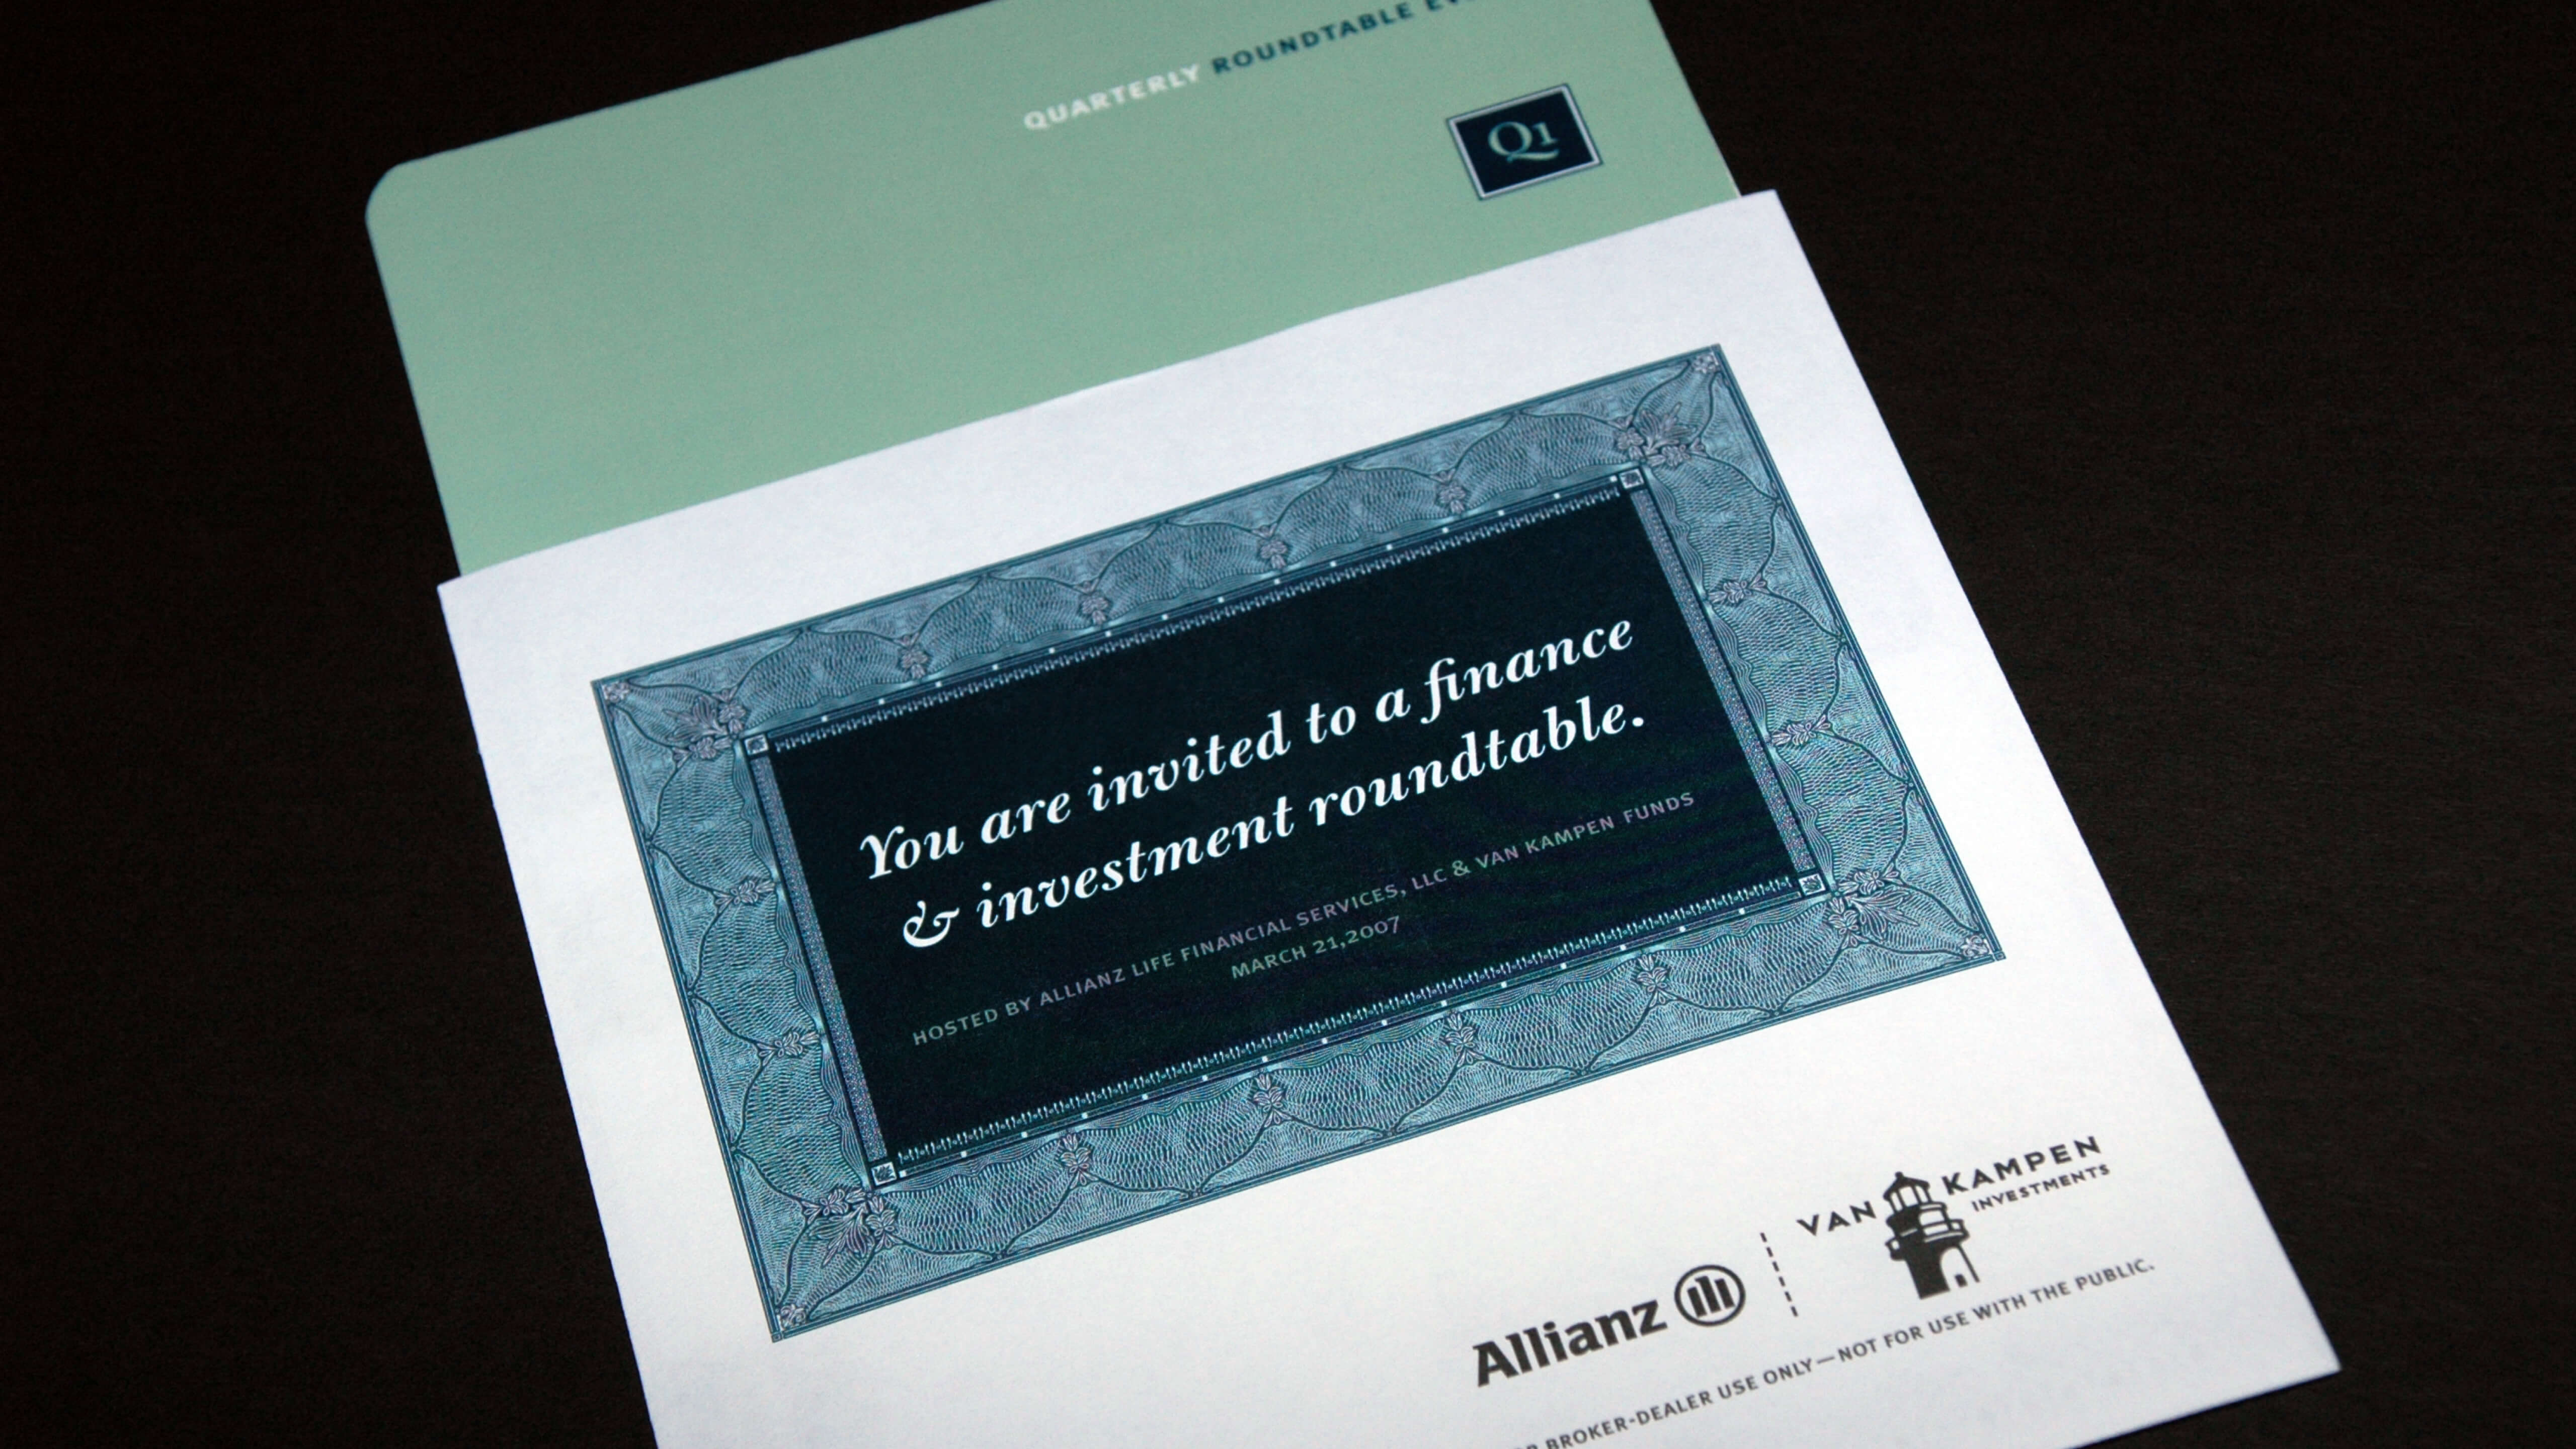 Allianz | Quarterly Round Table Invitation